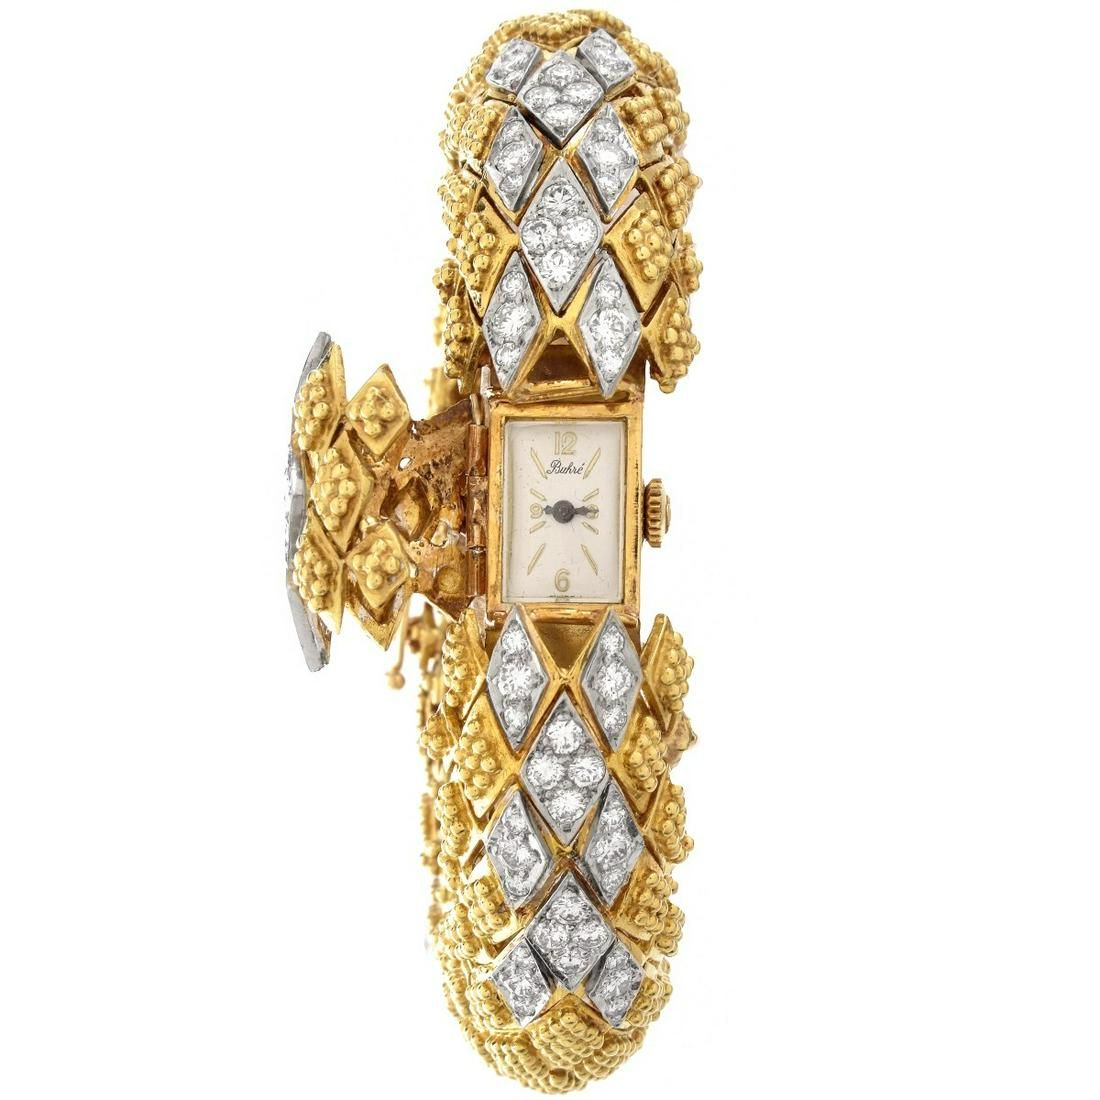 Vintage Buhre Diamond and 18K Watch